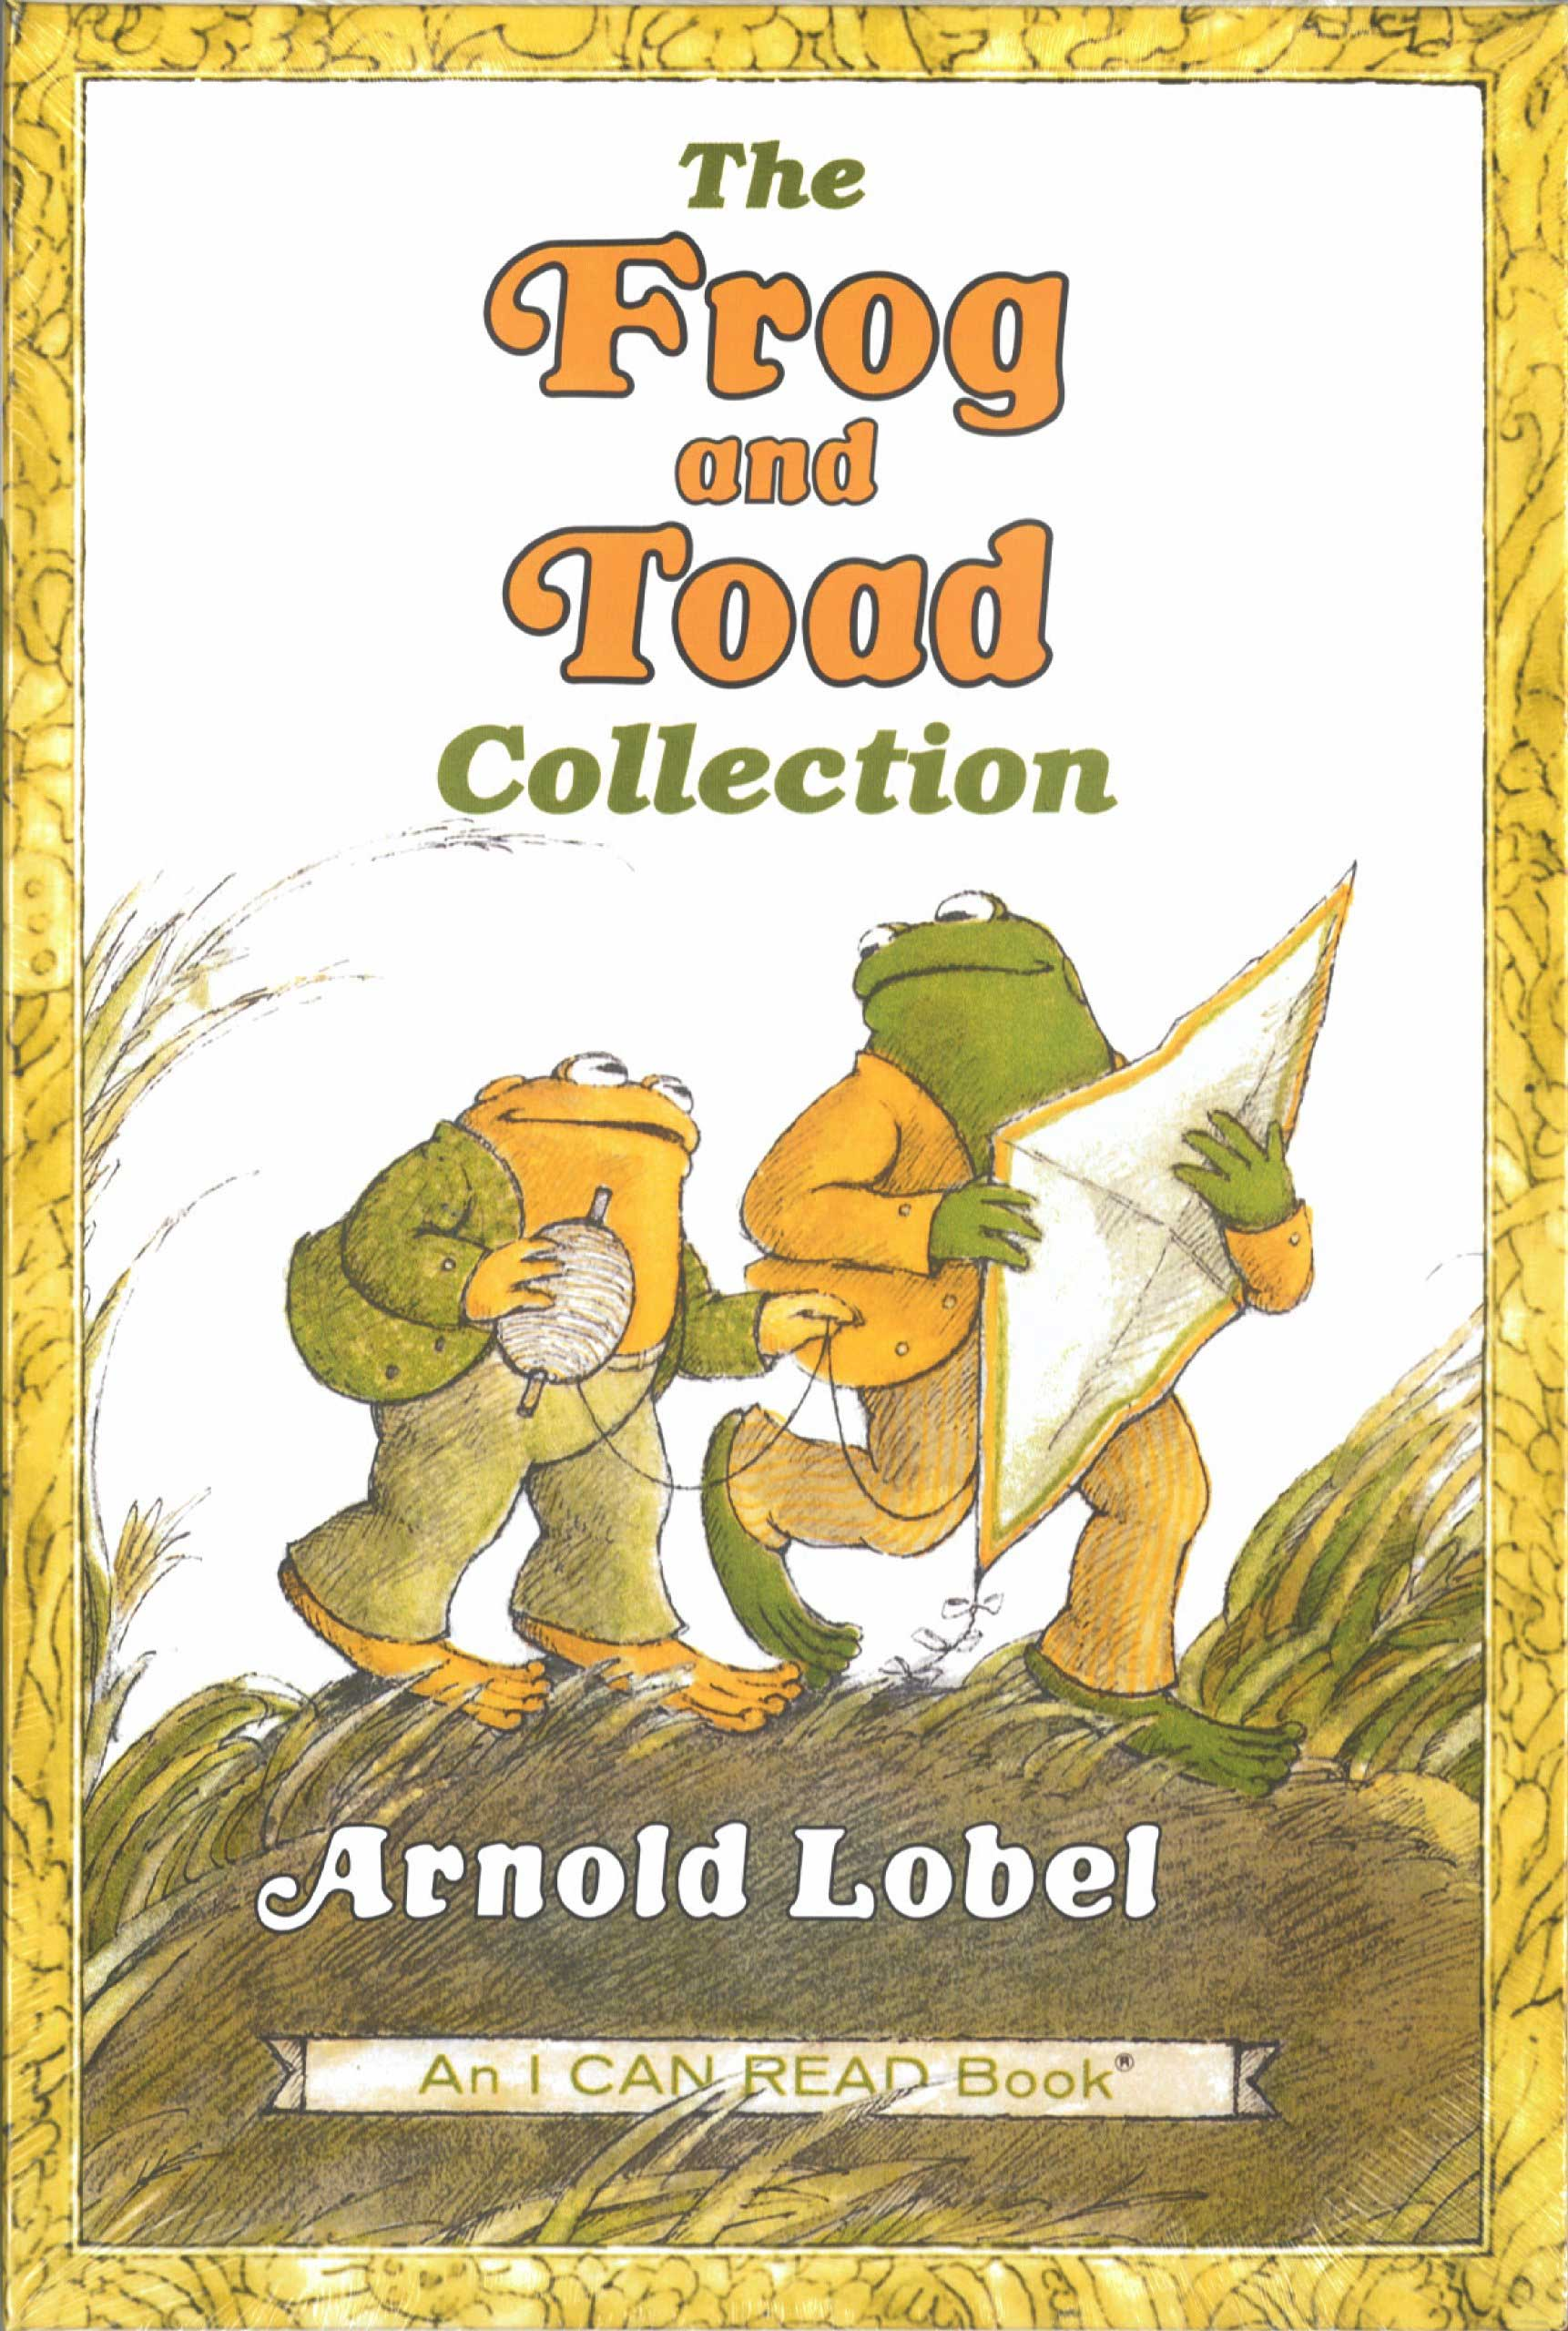 Frog and Toad (series), by Arnold Lobel.                                                                                                                            Two inseparable best friends keep each other company during all their adventures.                                                                                                                            Buy now: Frog and Toad (series)